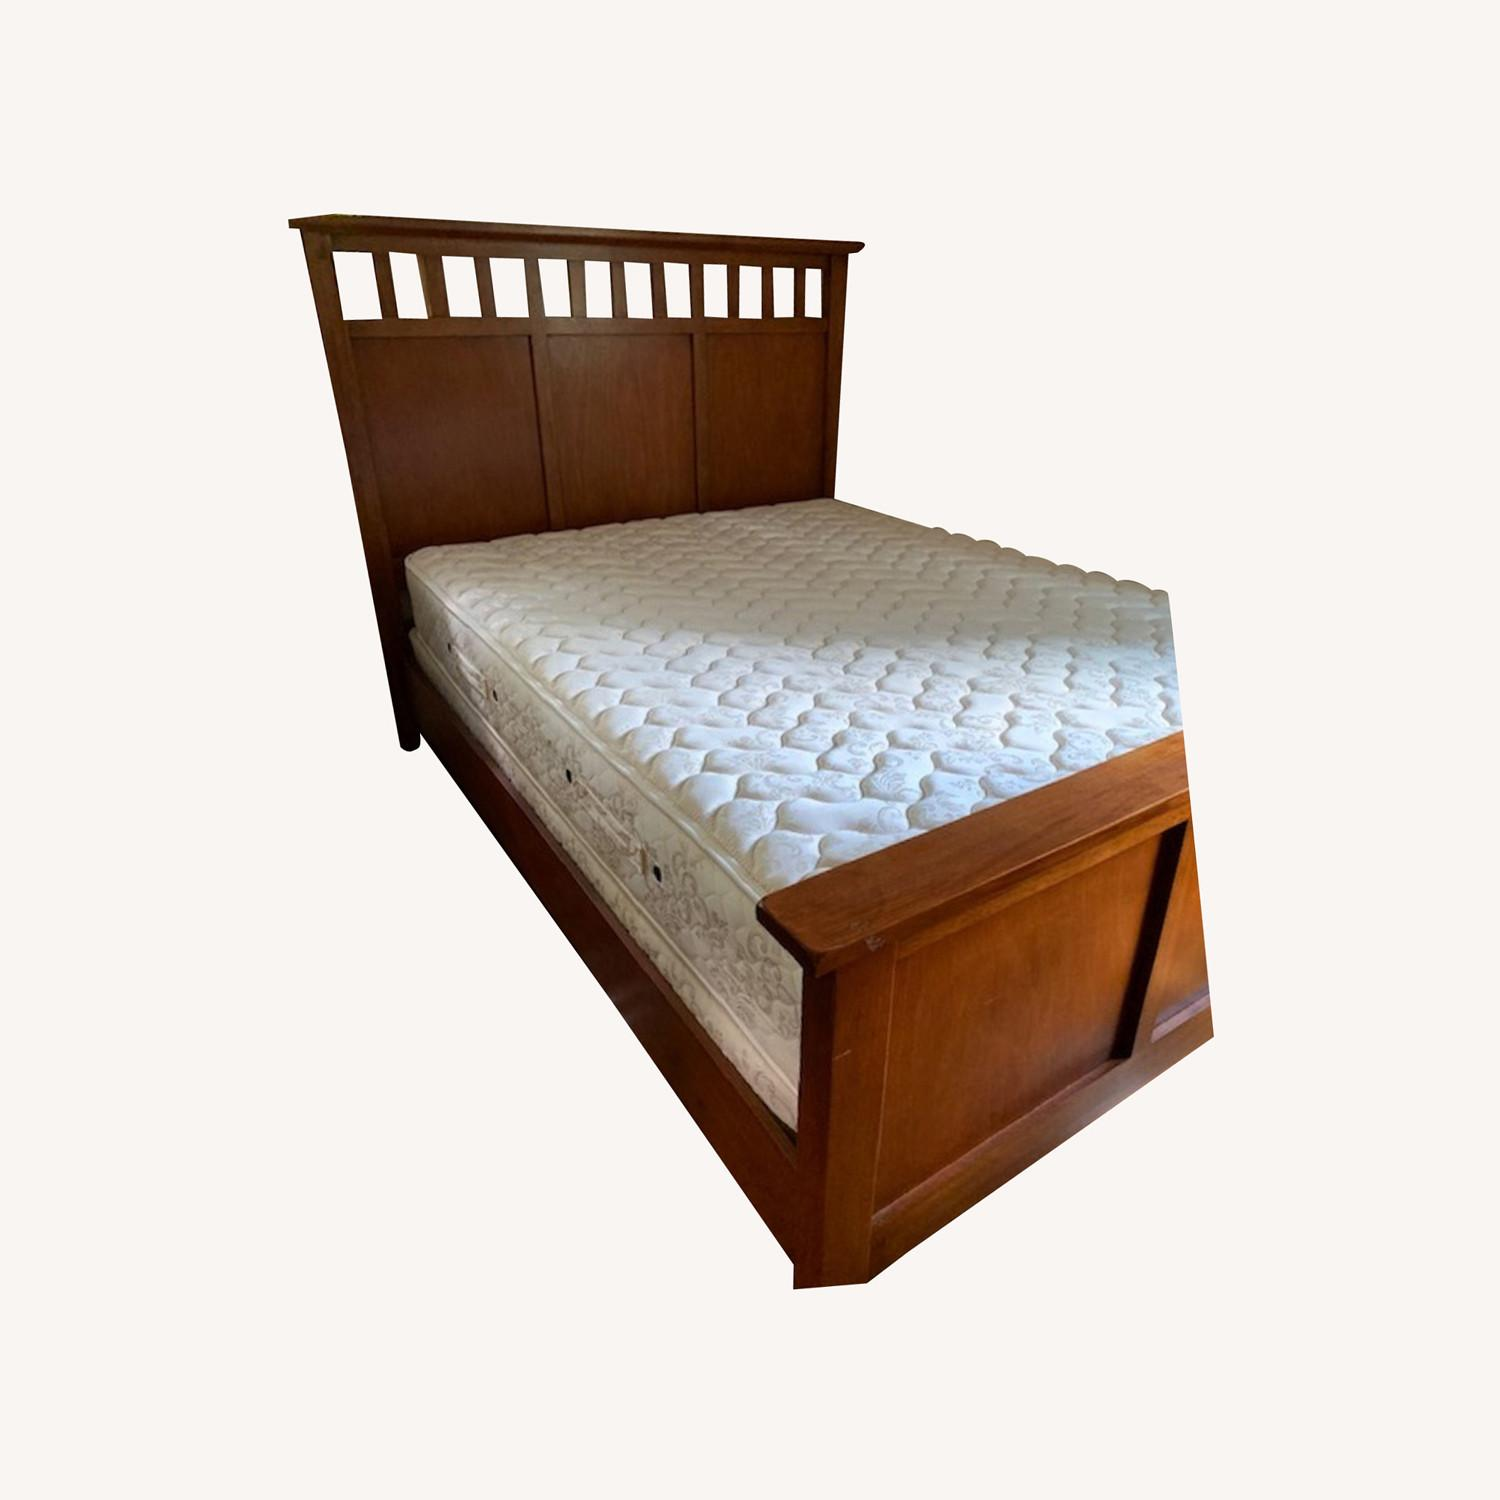 Crate & Barrel Solid Wood Bed and Panel - image-0